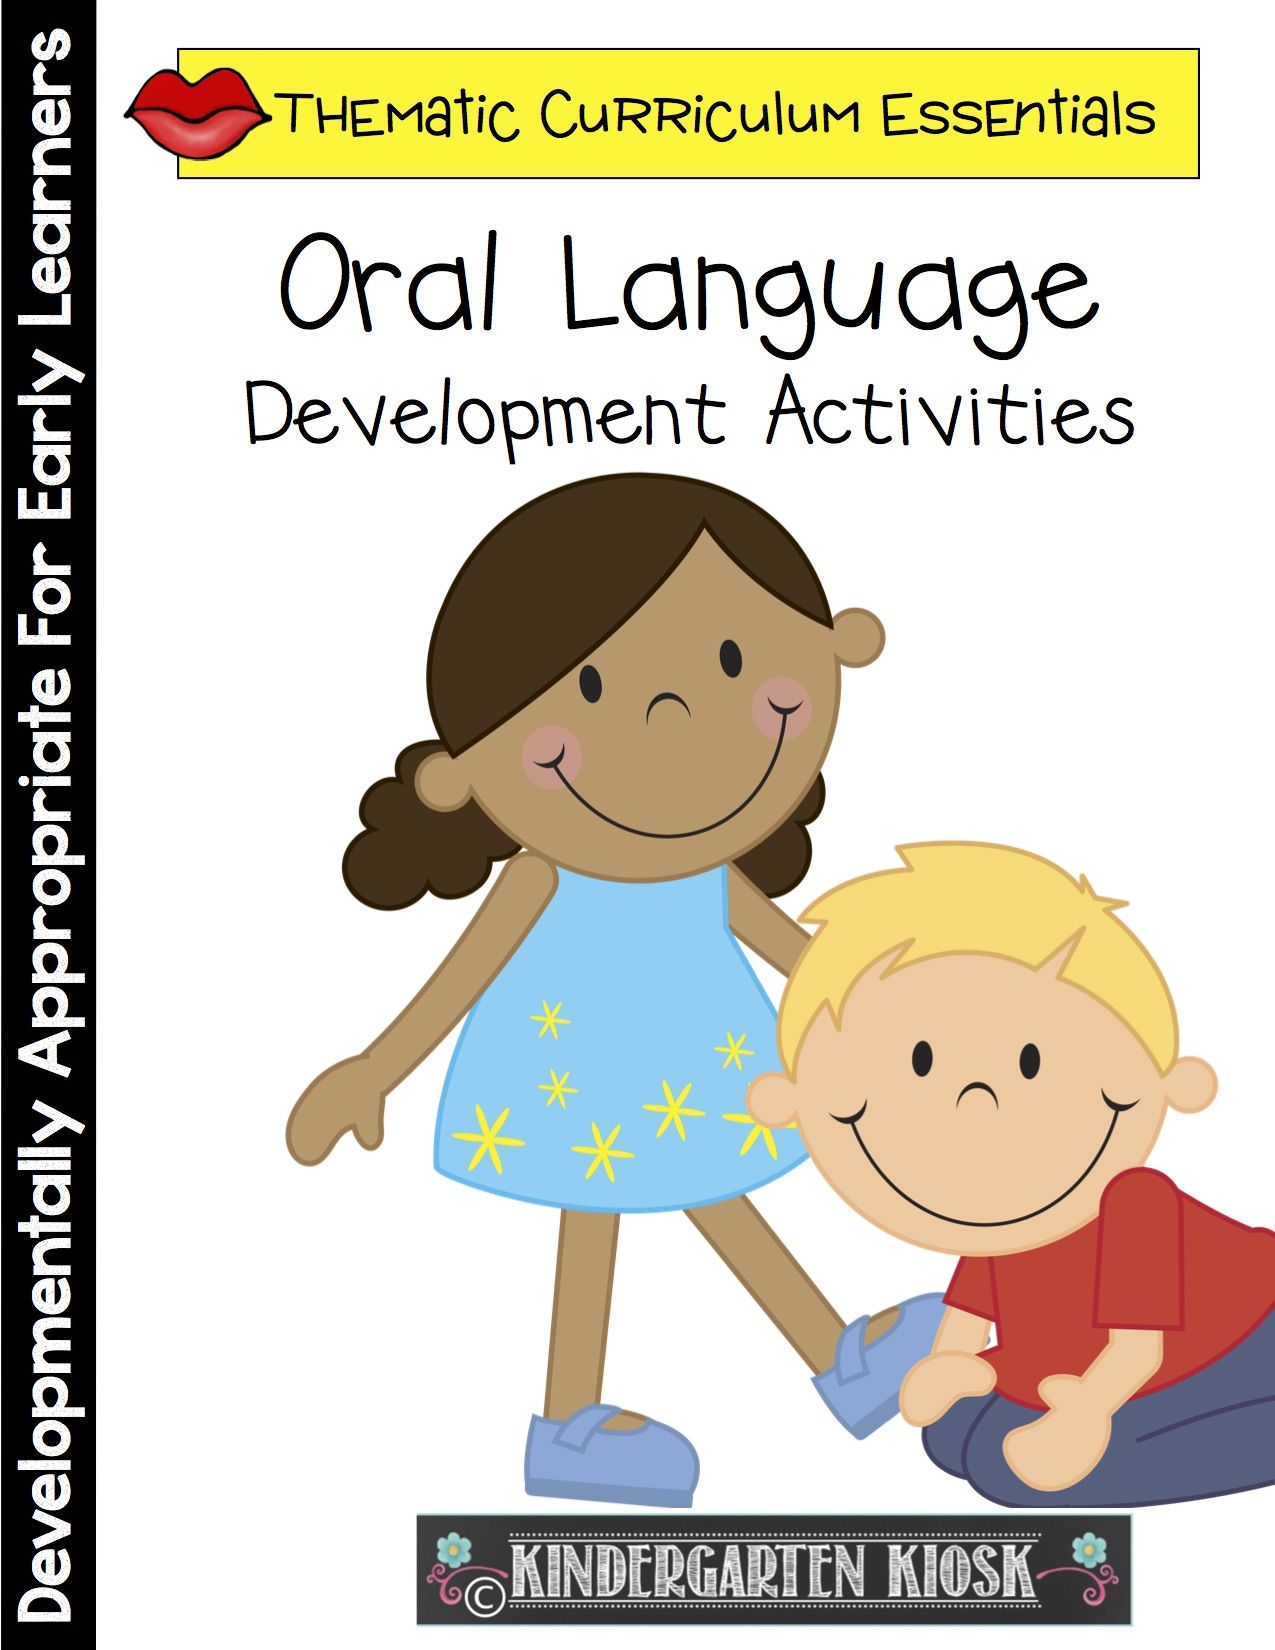 Strengthening The Development Of Oral Langauge Acquistion